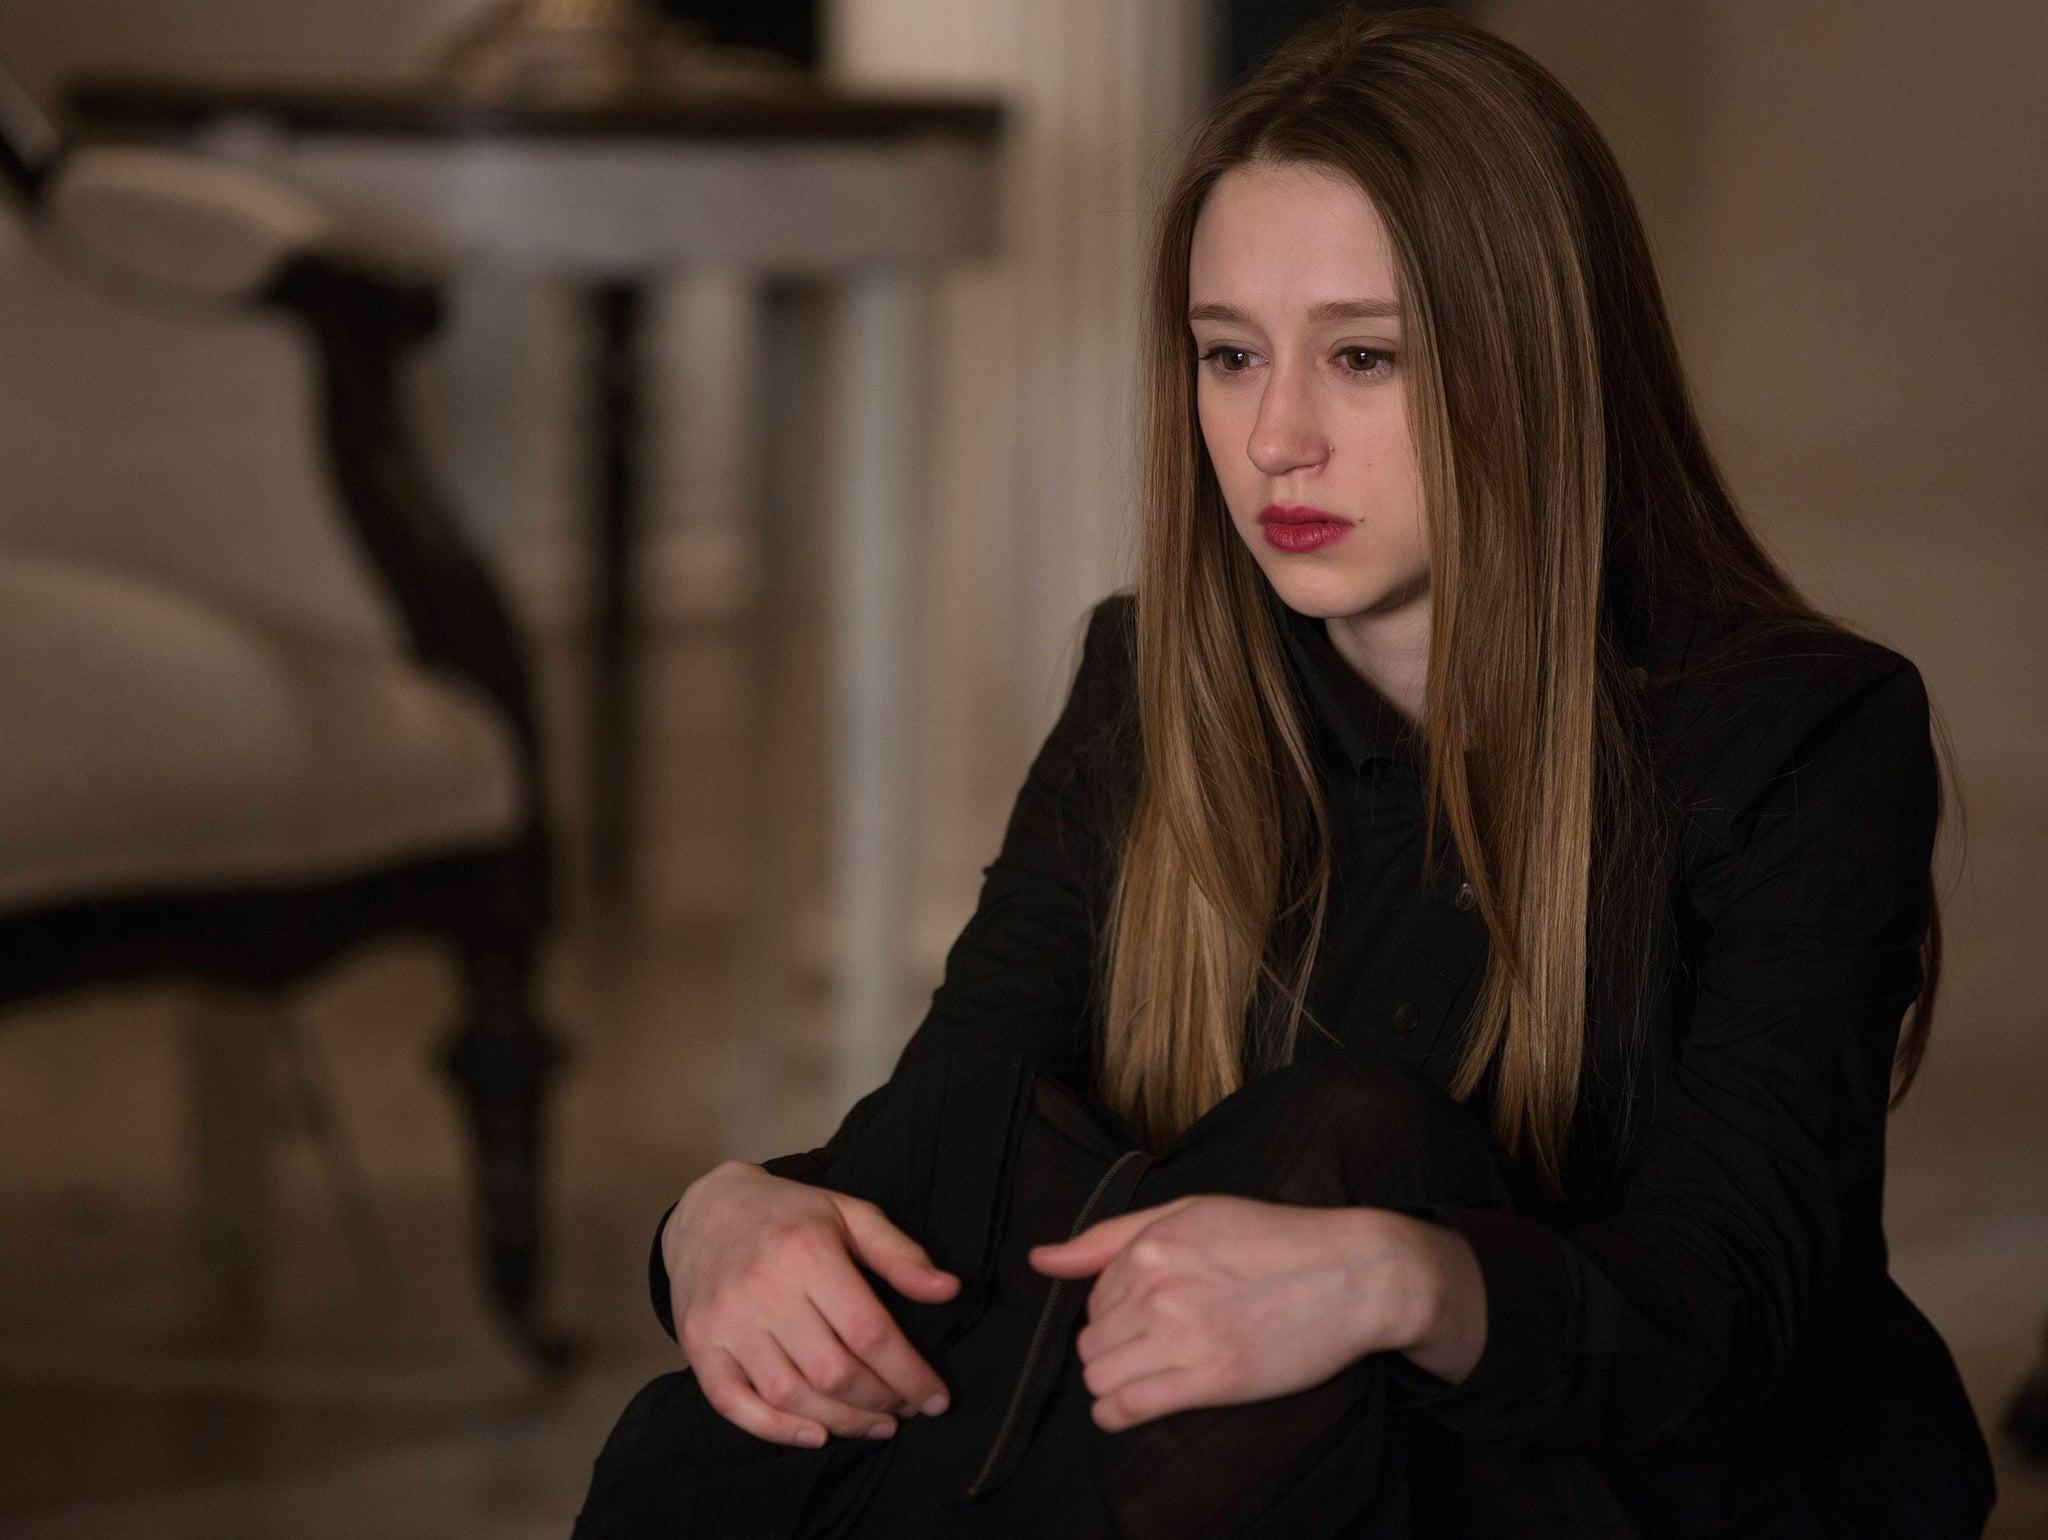 AMERICAN HORROR STORY: COVEN, Taissa Farmiga in 'The Seven Wonders' (Season 3, Episode 13, aired January 29, 2014). ph: Michele K. Short/FX Networks/courtesy Everett Collection